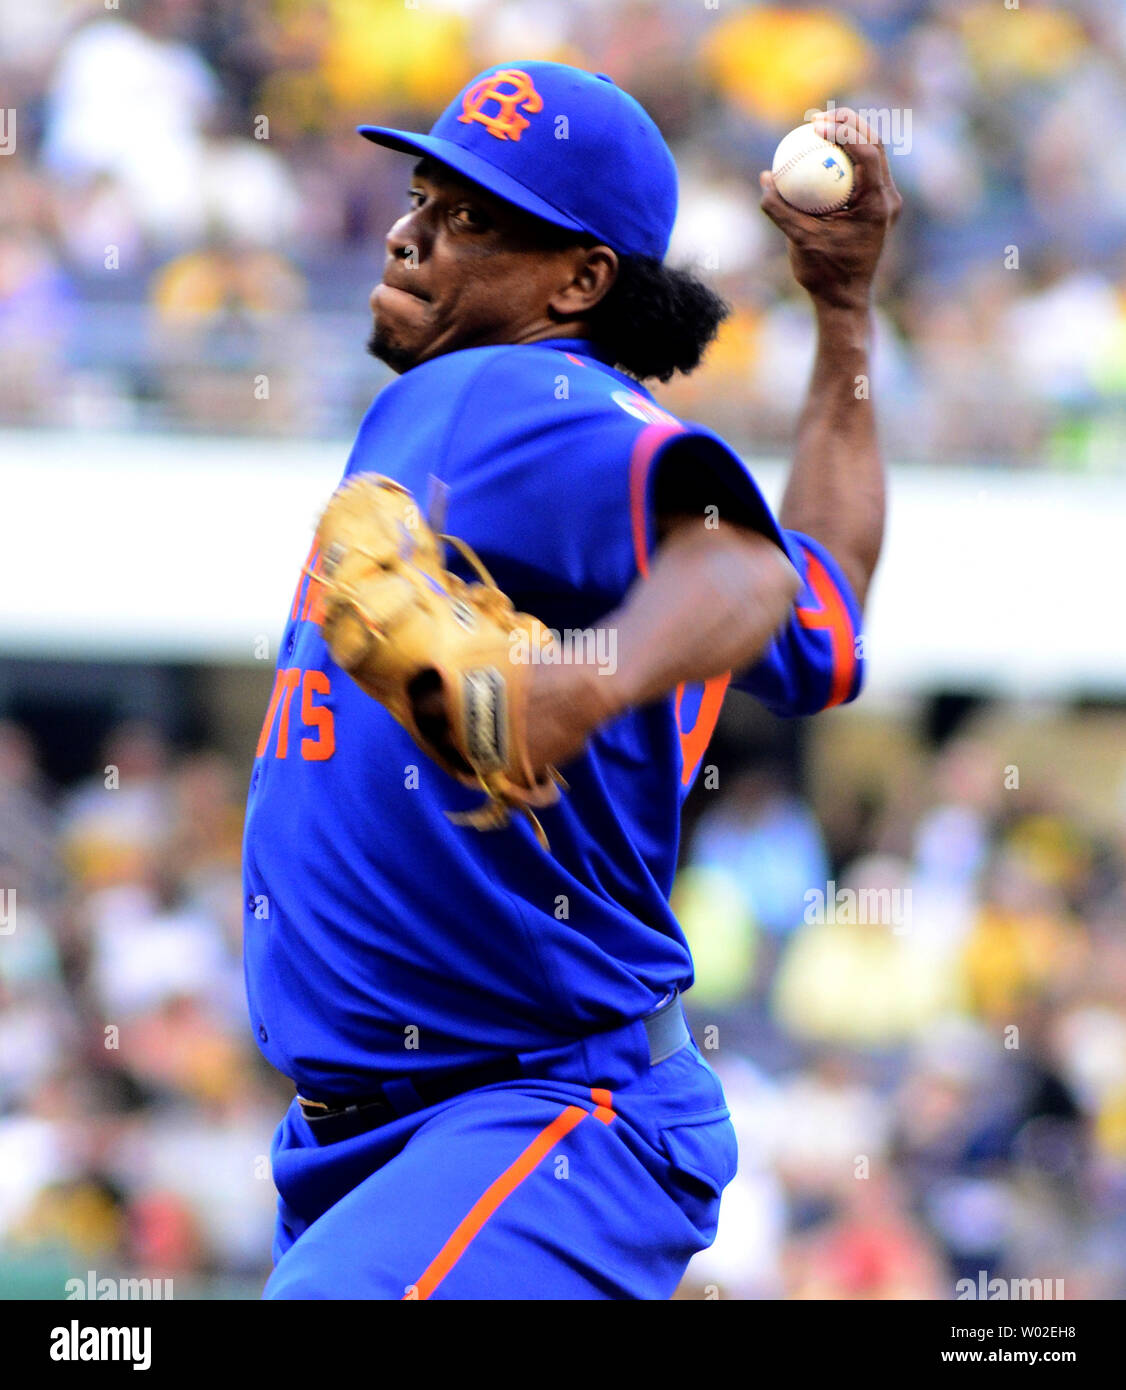 new arrival f7a7b e0814 New York Mets relief pitcher Jenrry Mejia closes the ninth ...